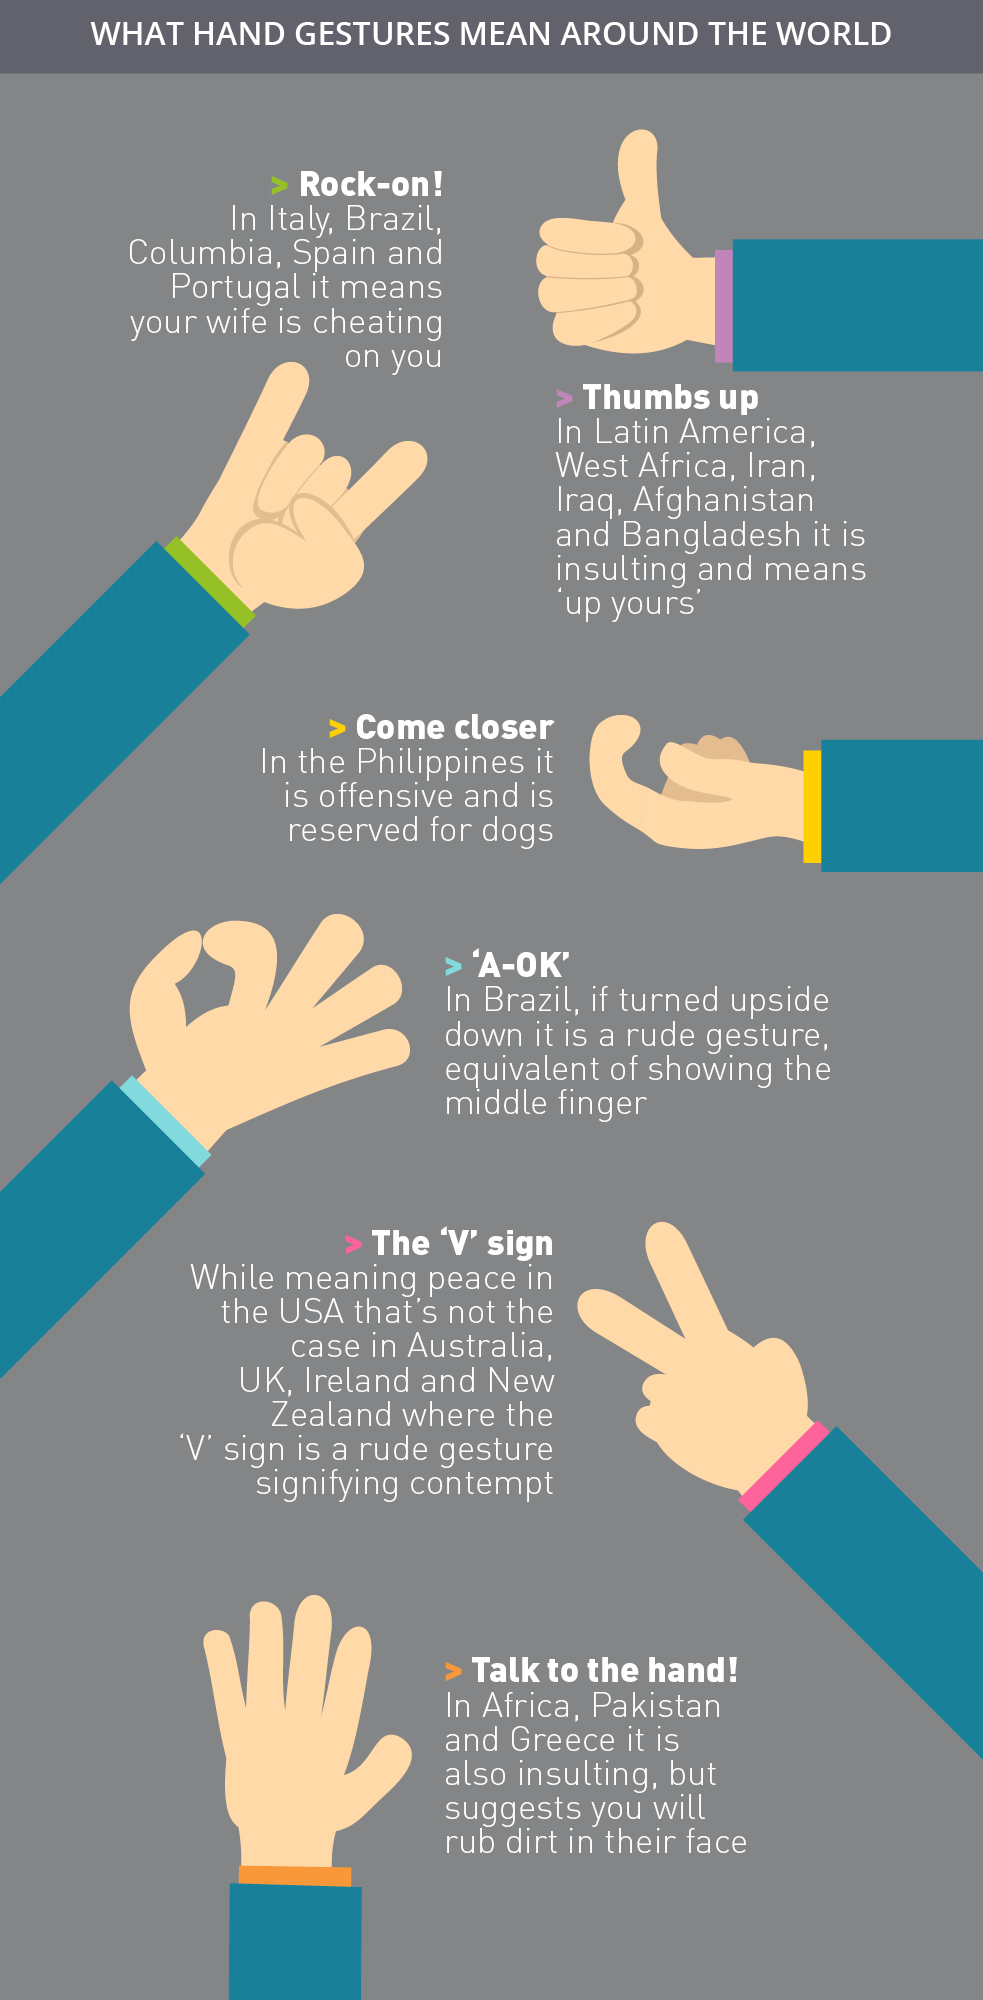 Meaning of sexual hand gestures